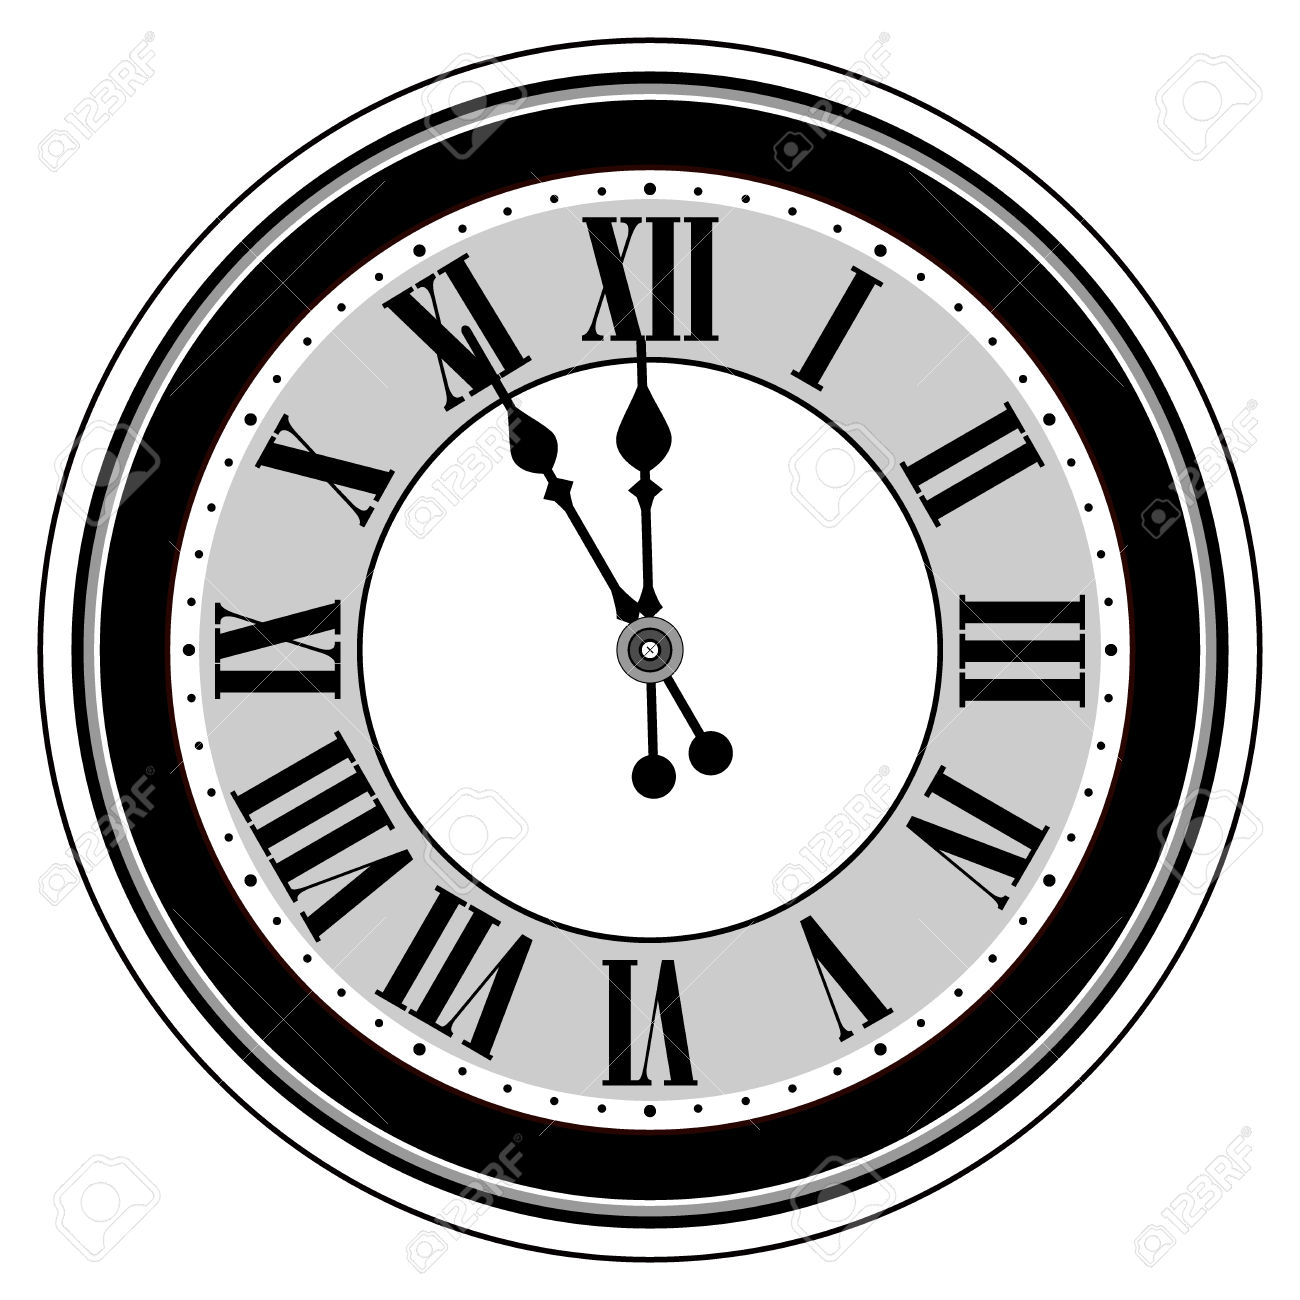 Clock midnight clipart svg transparent library Clock Clipart Black And White | Free download best Clock Clipart ... svg transparent library